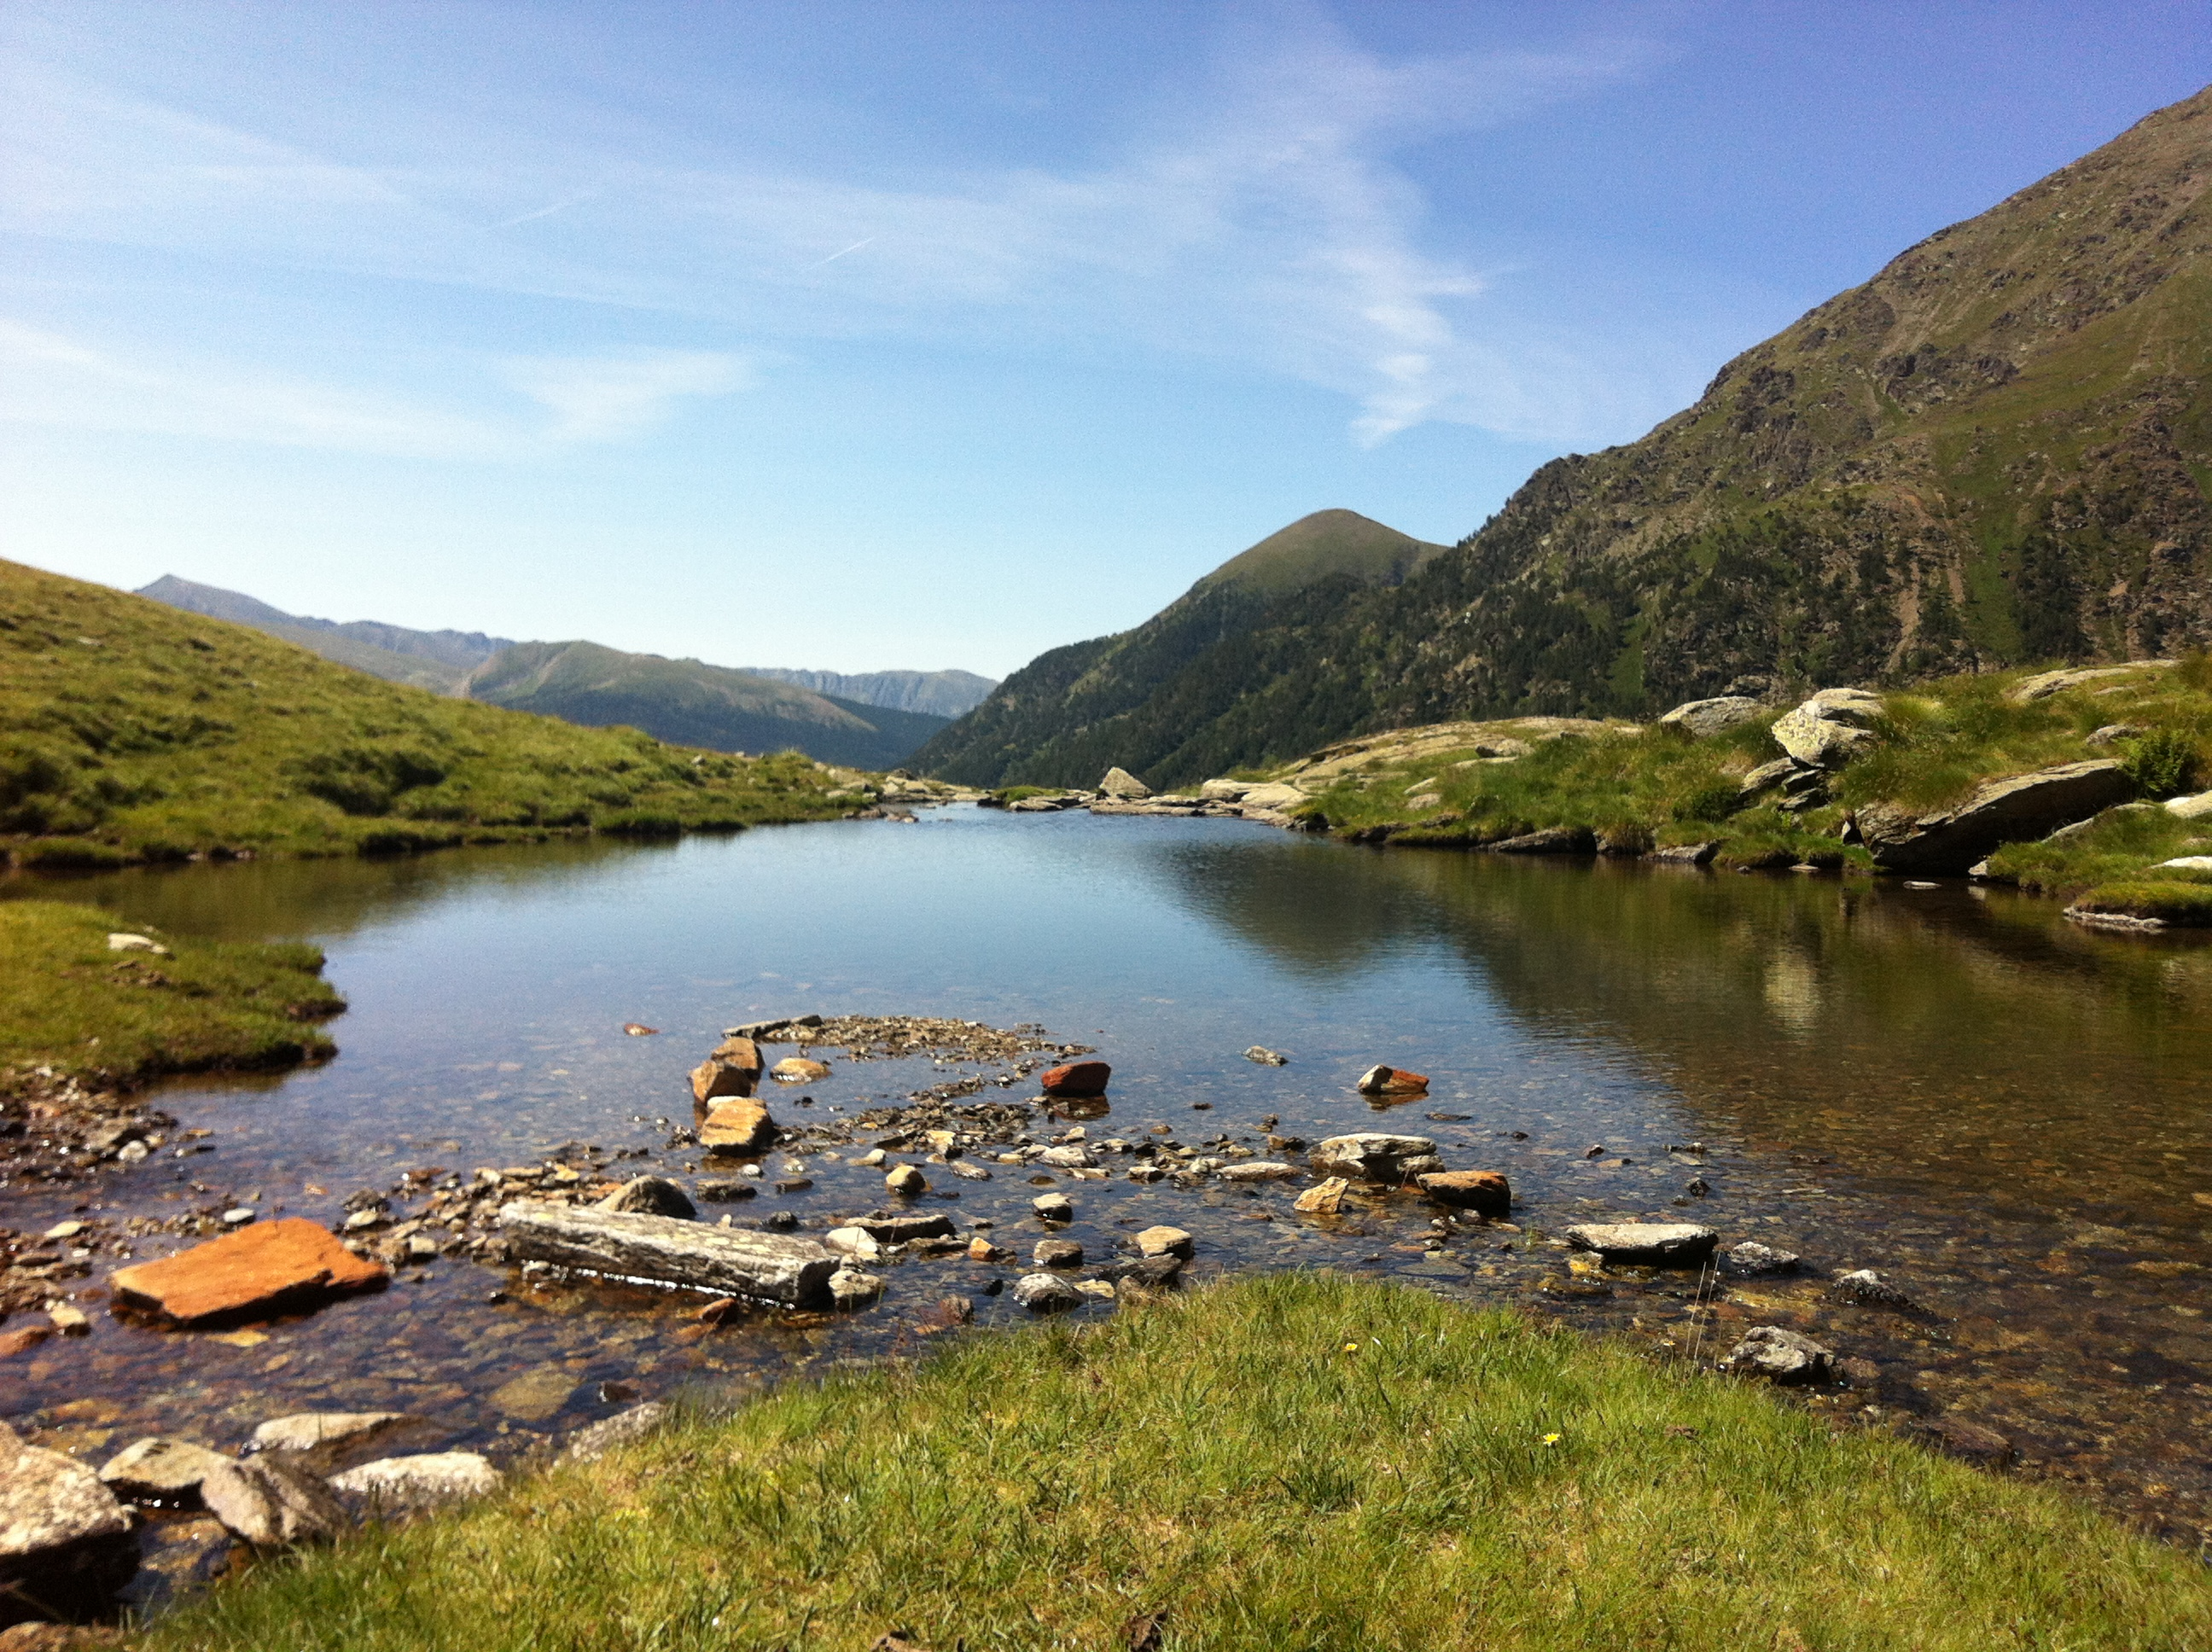 senderismo-hiking-andorra-mountain-hostel-tarter81